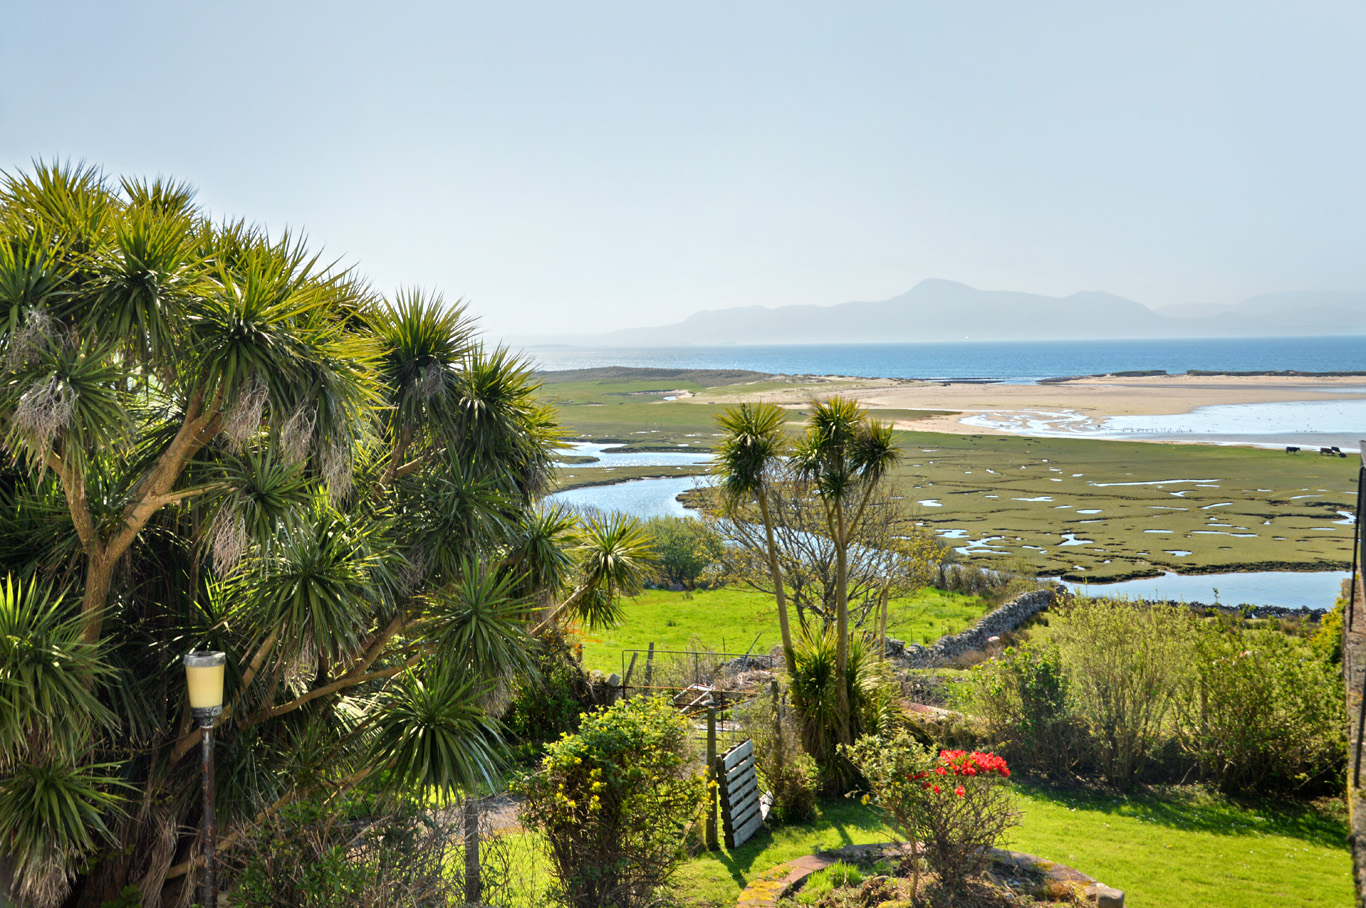 The 'tropical' side of Ireland